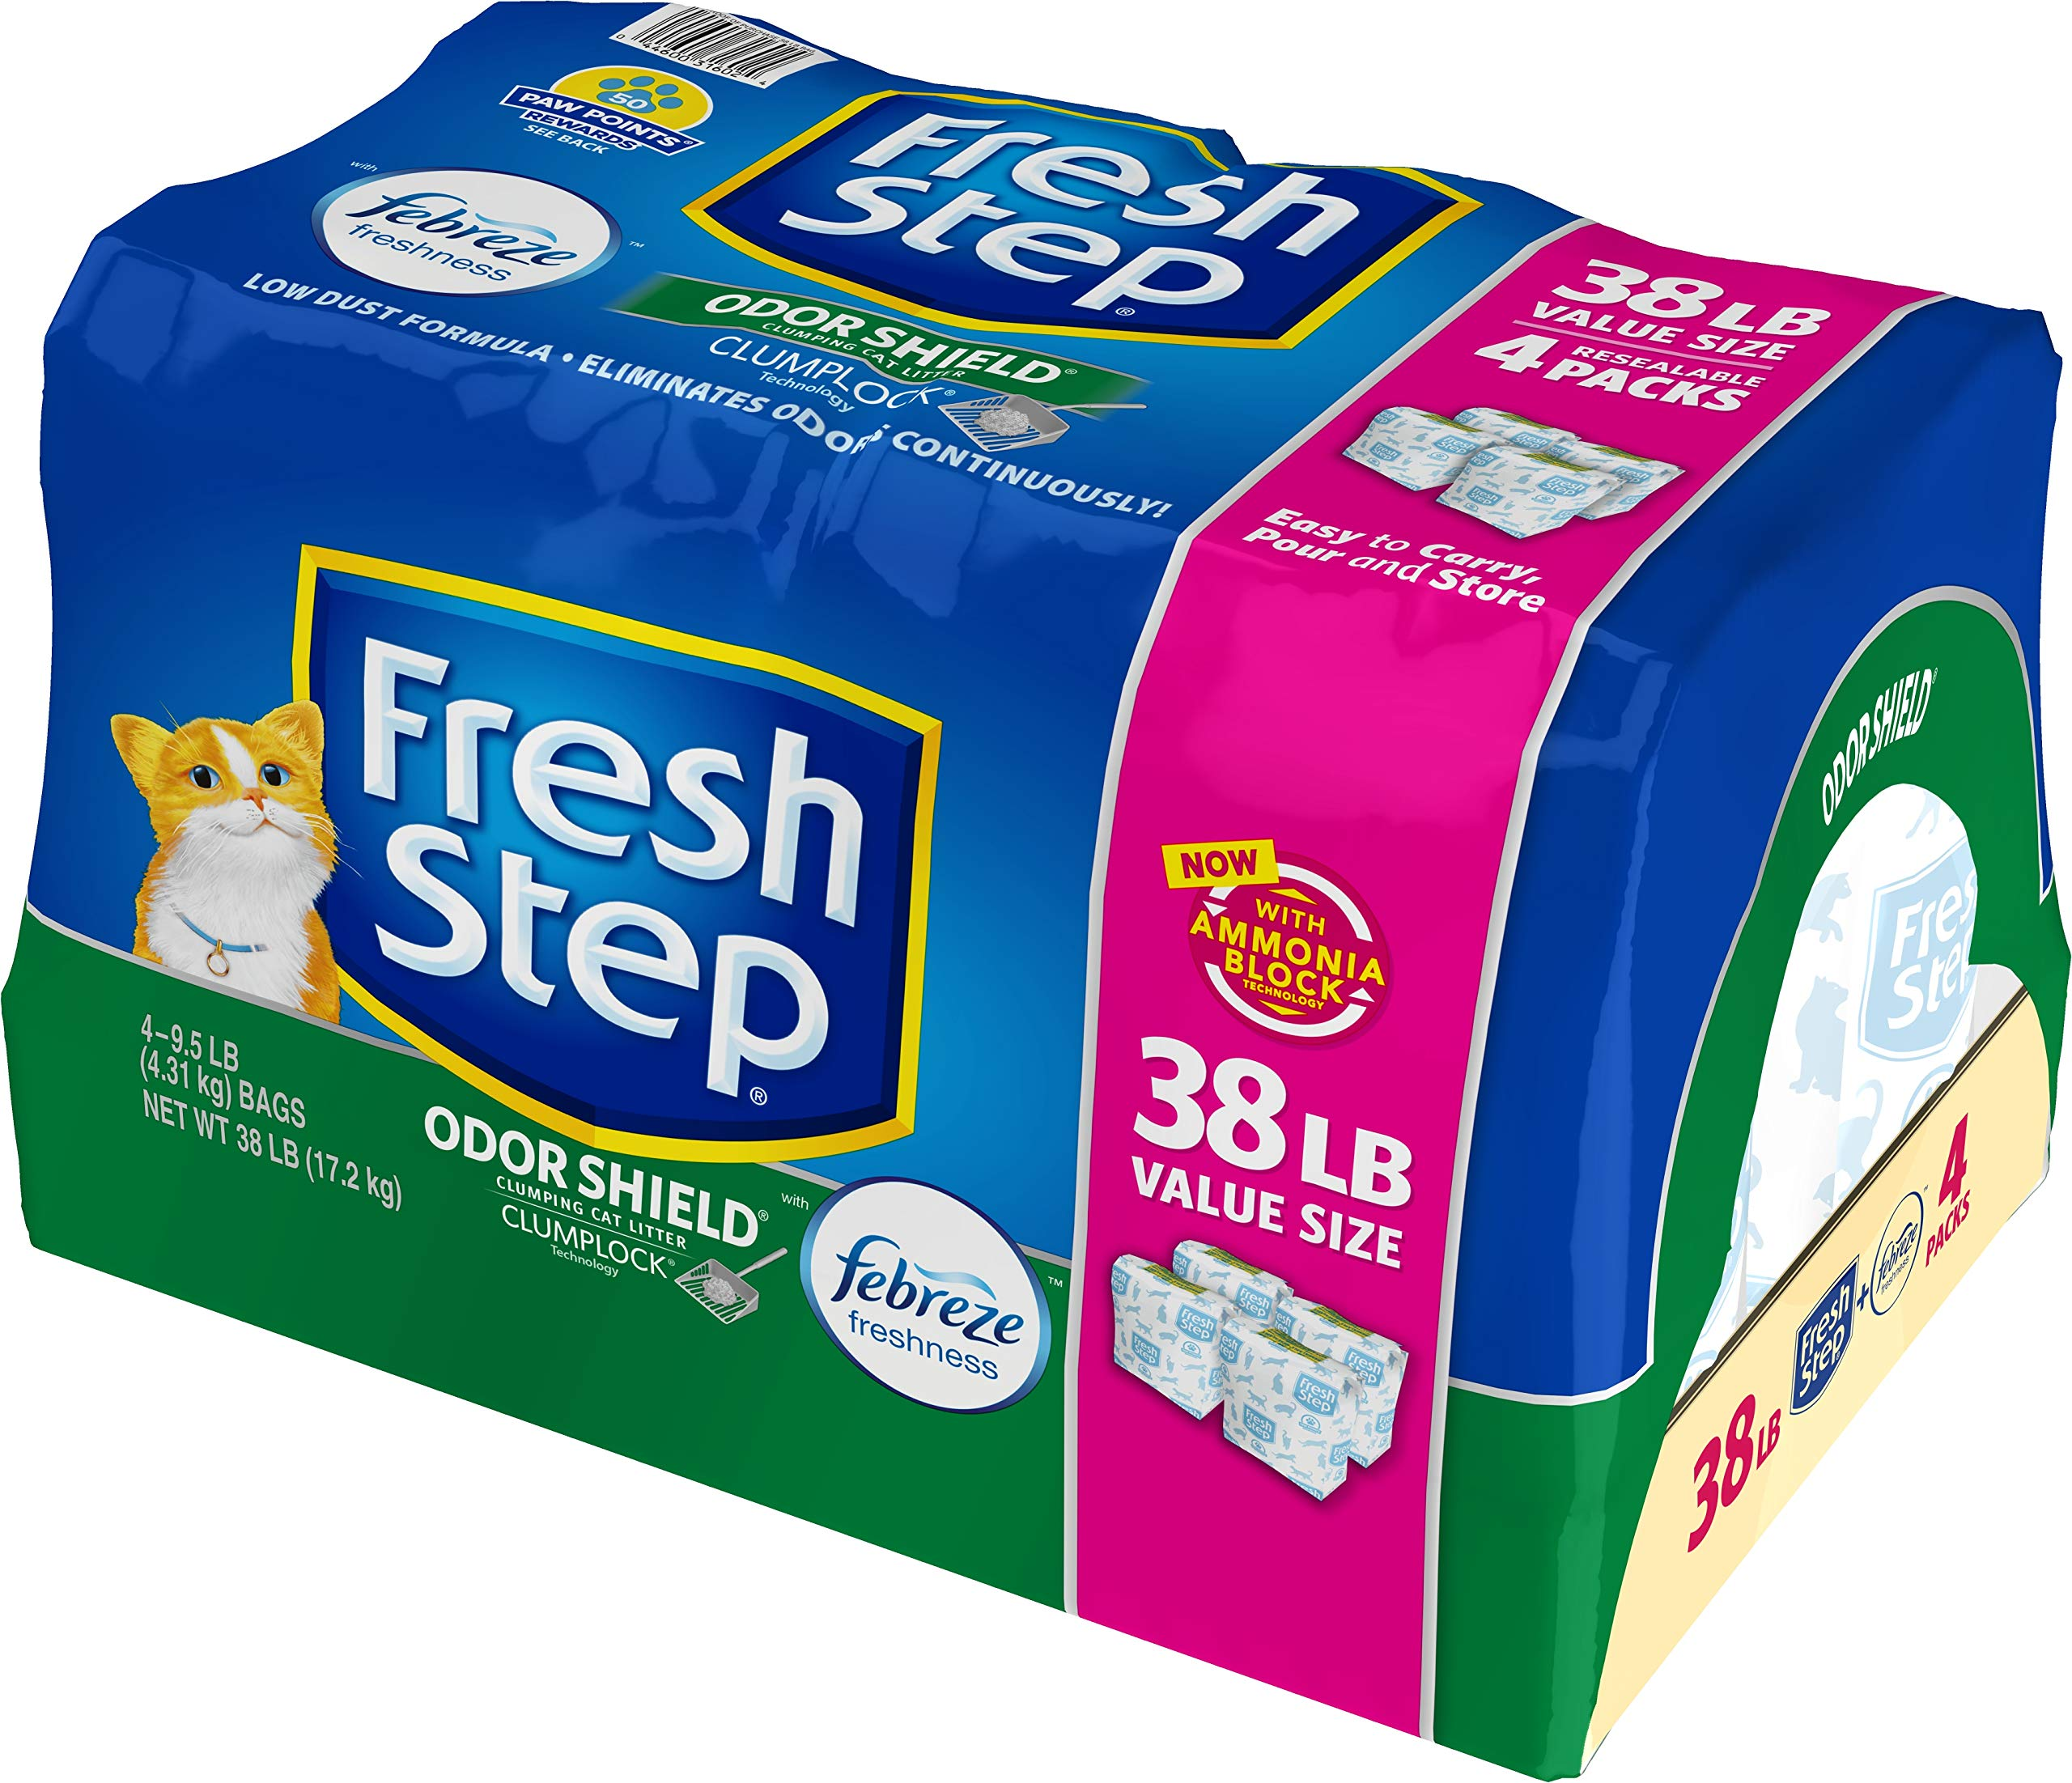 Fresh Step Odor Shield Scented Litter with The Power of Febreze, Clumping Cat Litter, 38 lb by Fresh Step